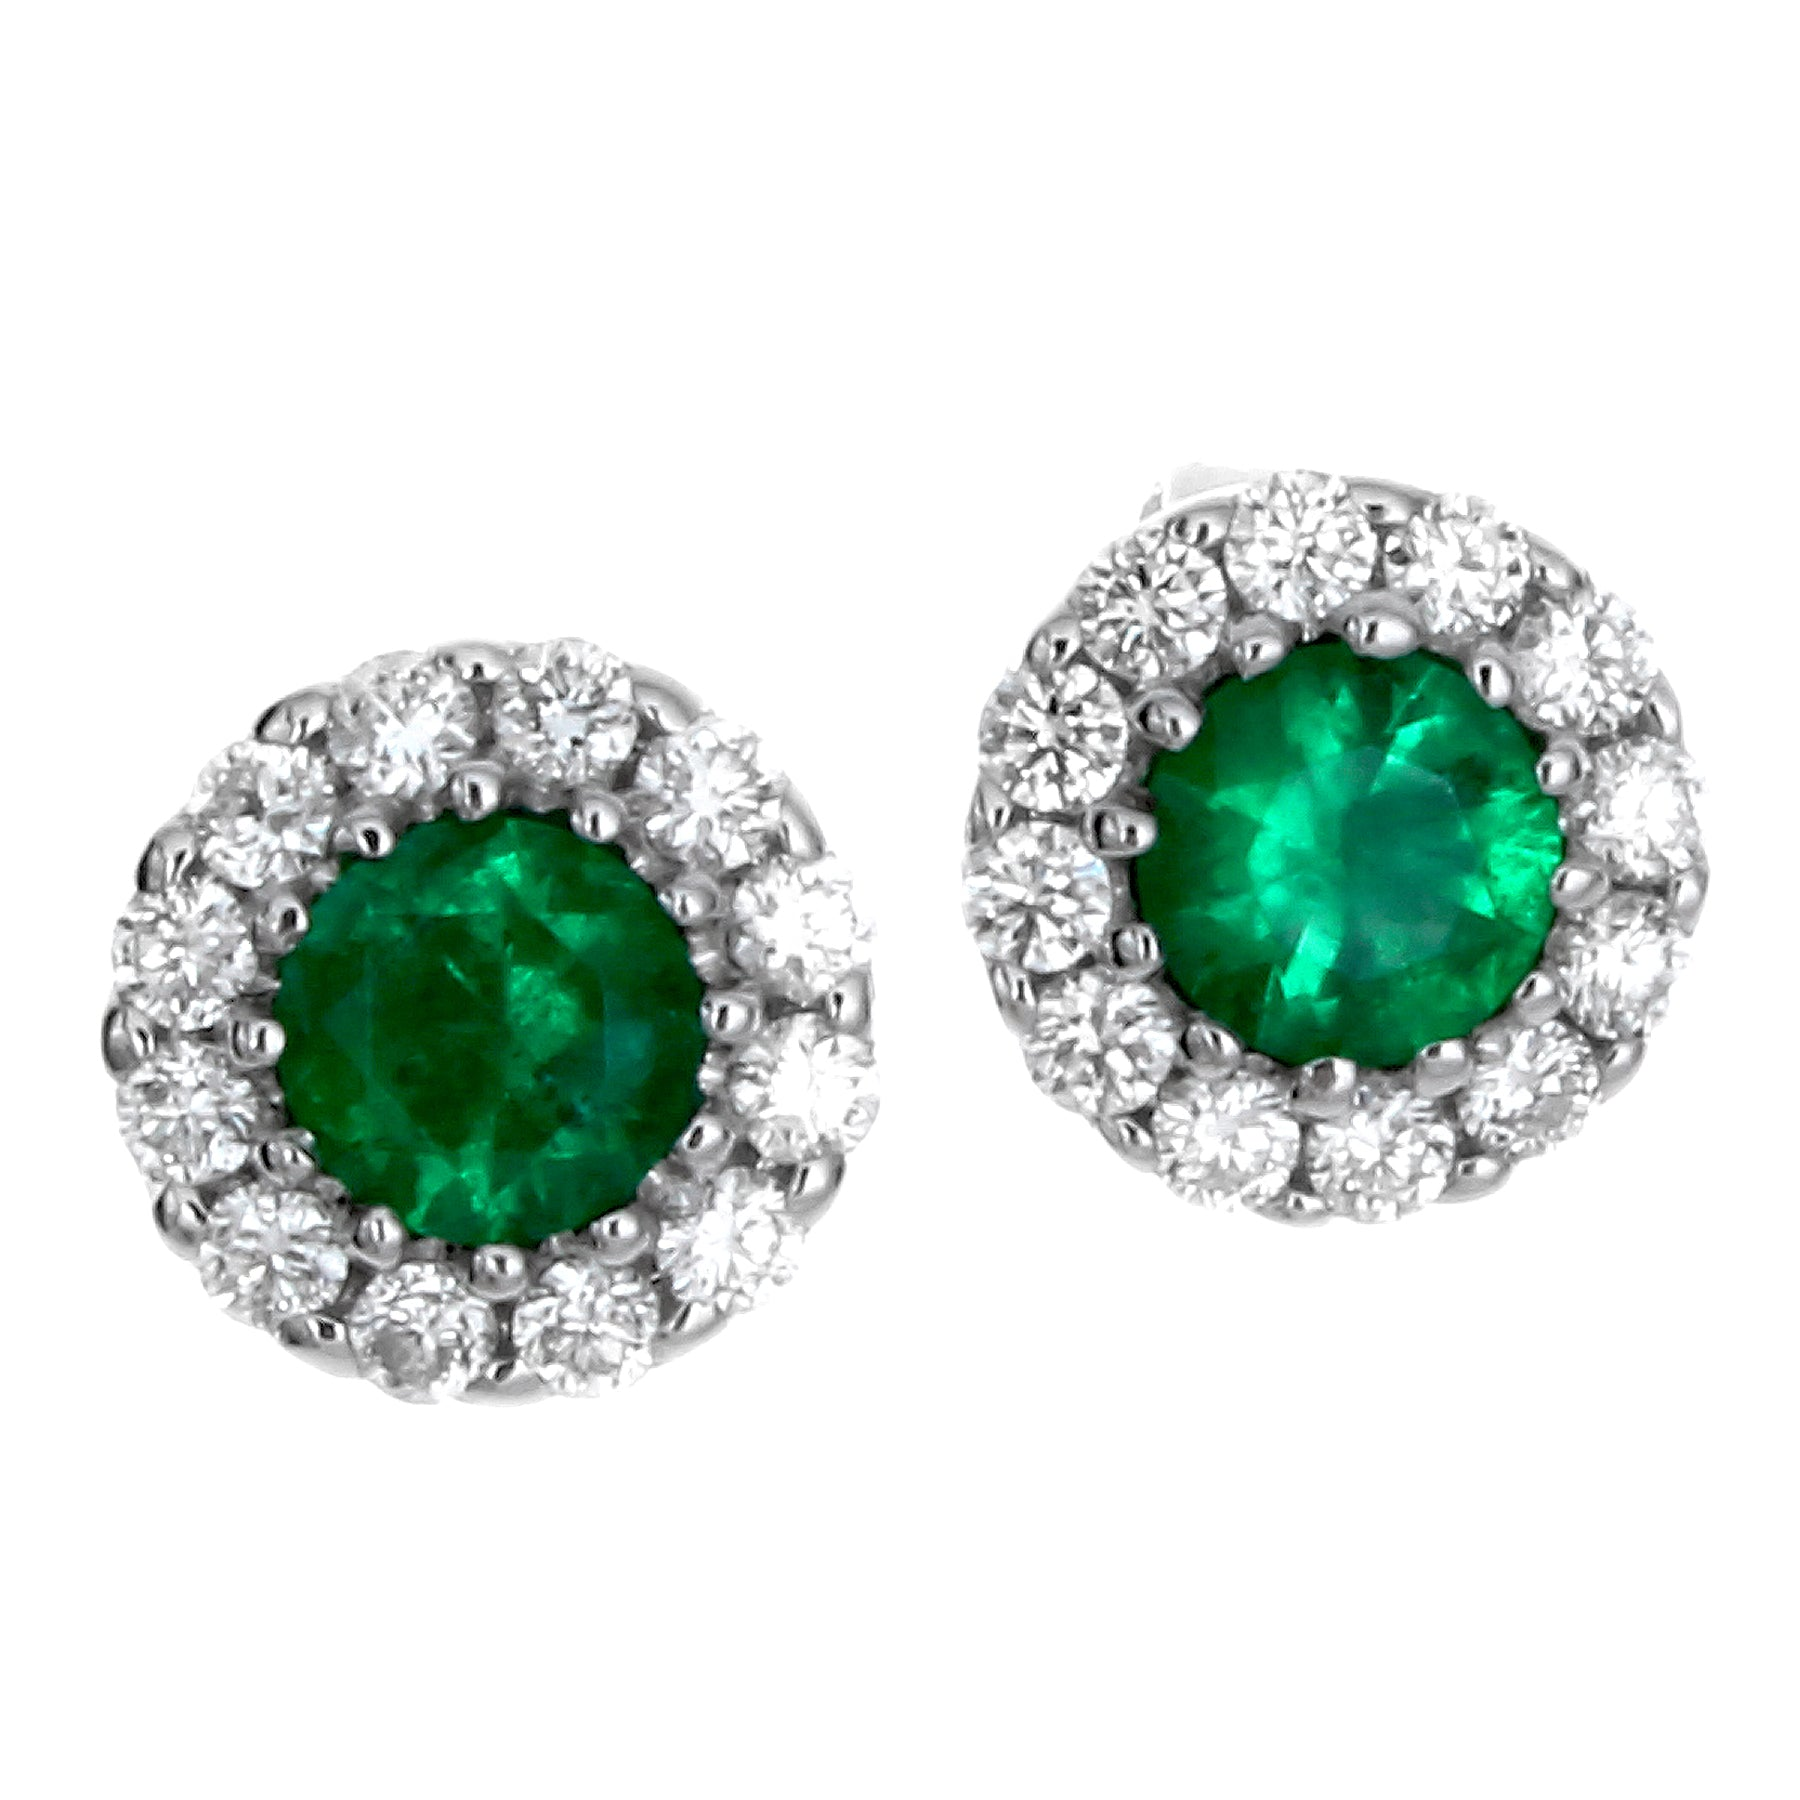 Gregg Ruth Emerald & Diamond Round Halo Stud Earrings 18K White Gold